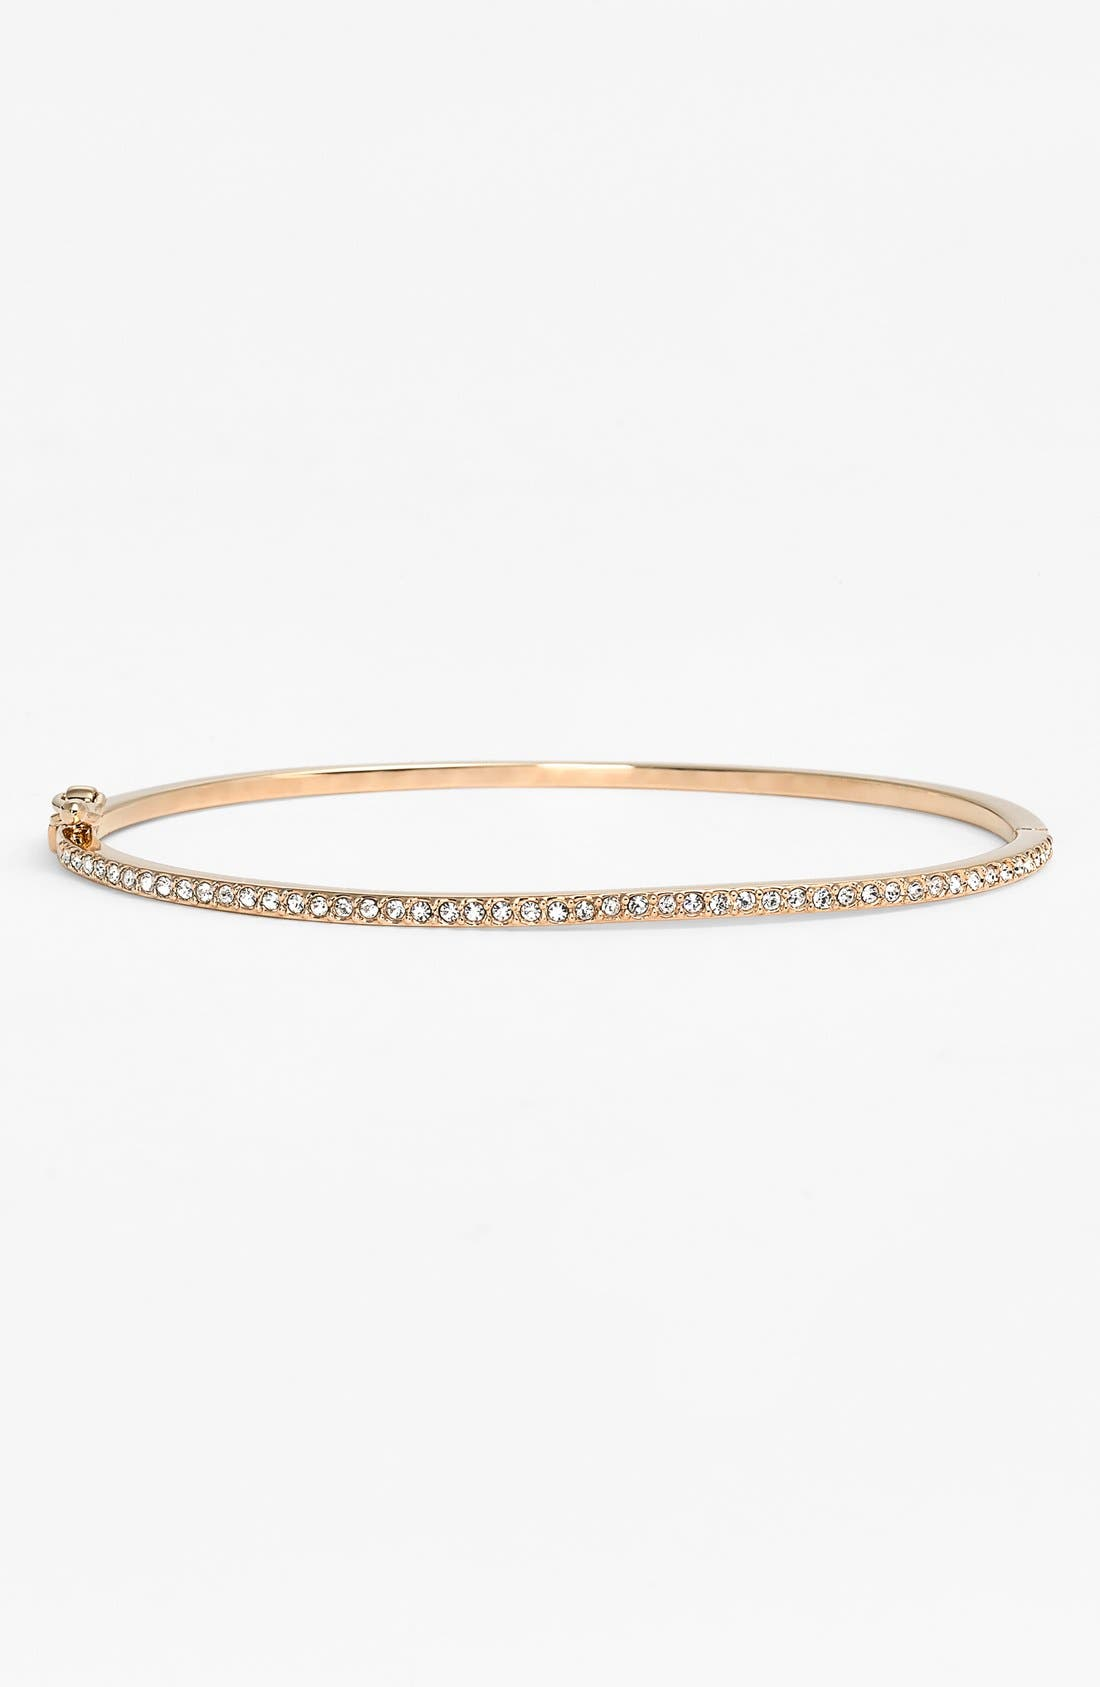 Alternate Image 1 Selected - Judith Jack Boxed Skinny Pavé Hinge Bangle